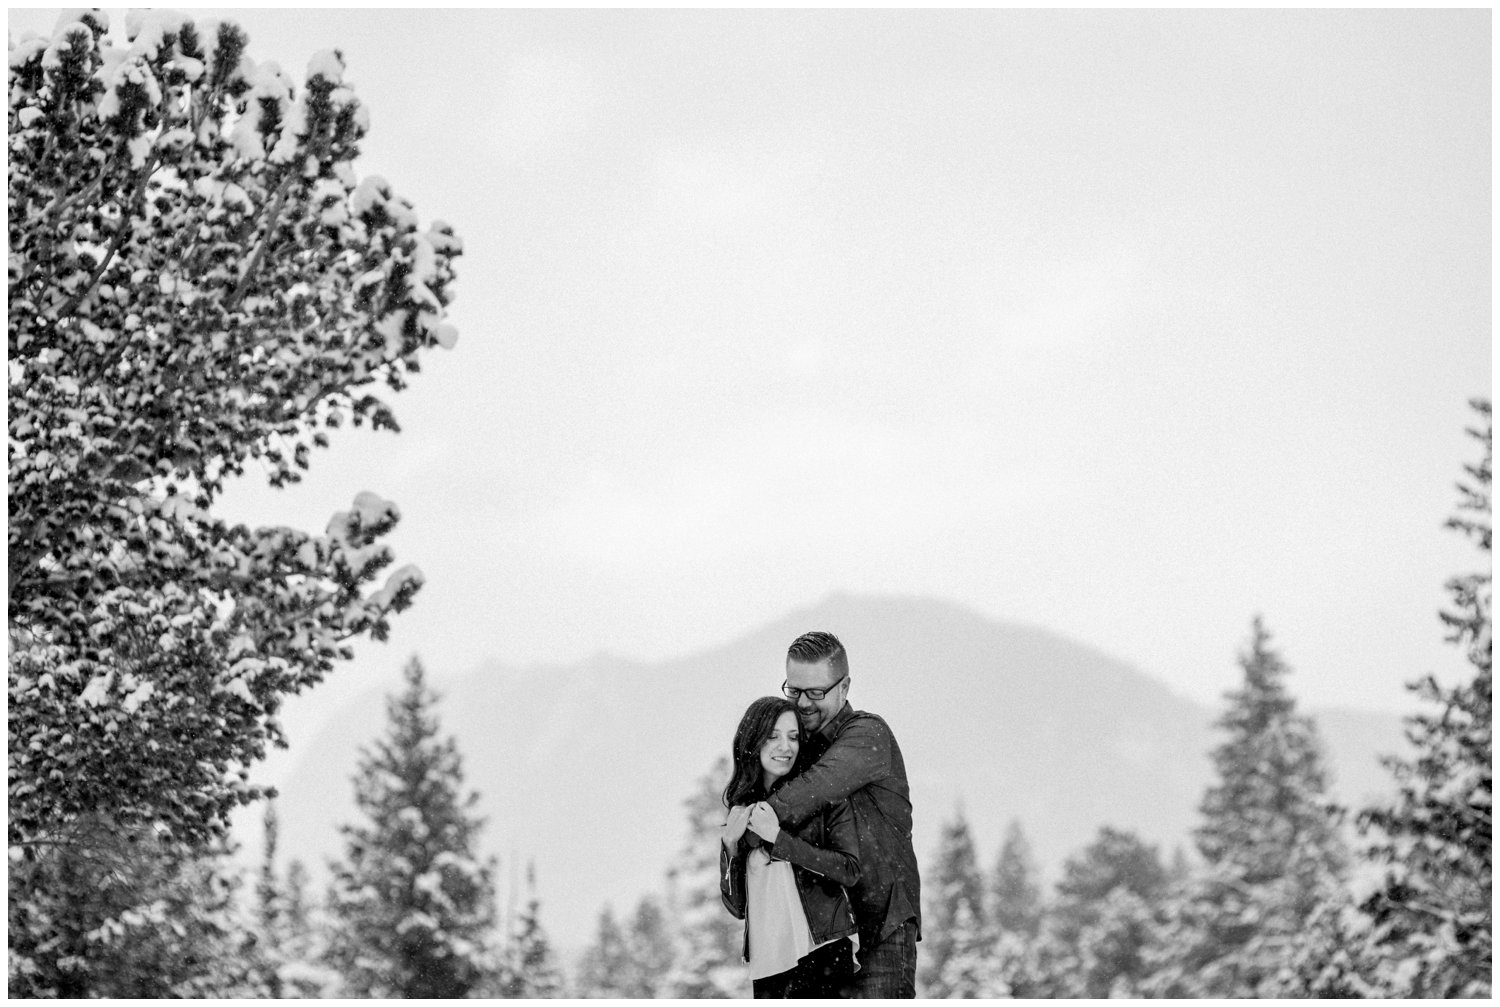 black and white photo of couple on snowy mountain